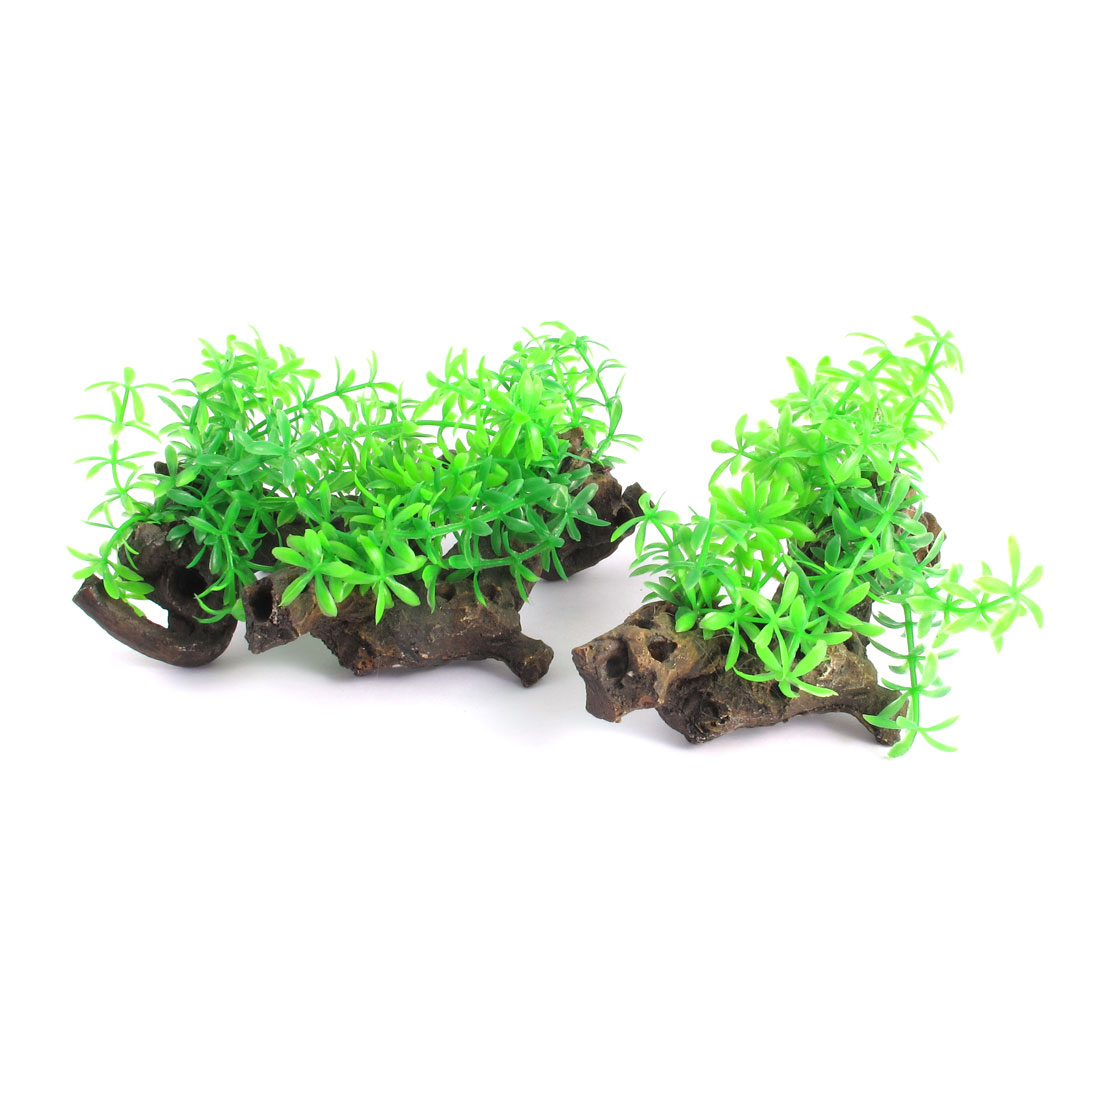 Unique Bargains 3Pcs Aquarium Decaying Trunk Driftwood Tree Wood Grass Ornament Green